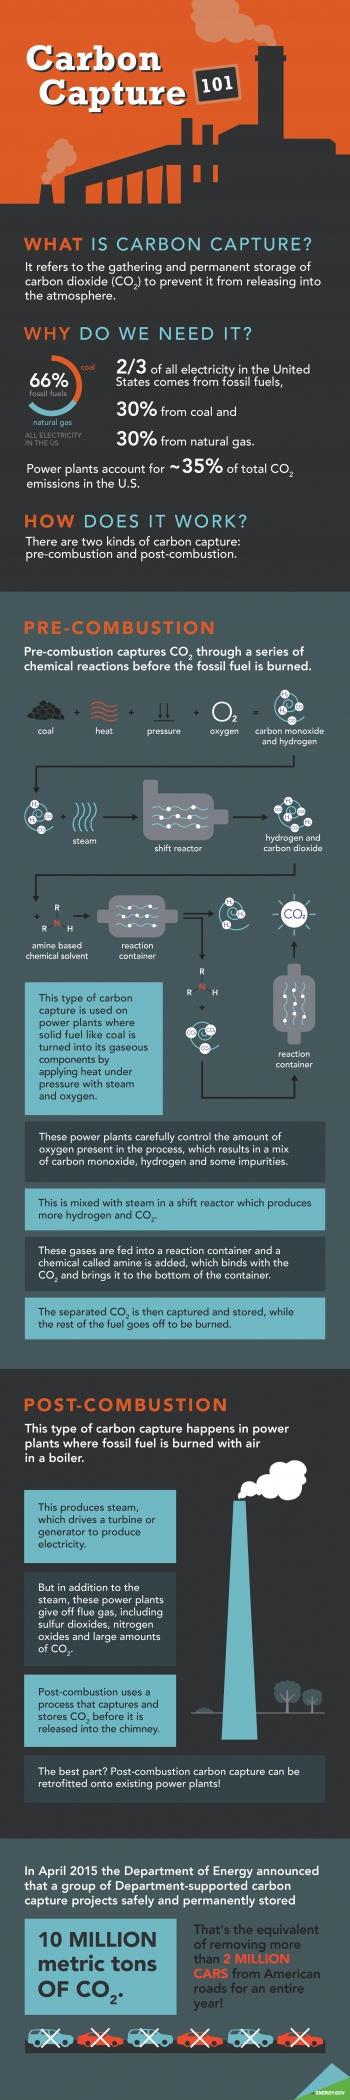 """Carbon capture is an important part of the Energy Department's Fossil Energy research and development efforts, but it can be hard to understand. This infographic breaks it down for you. 